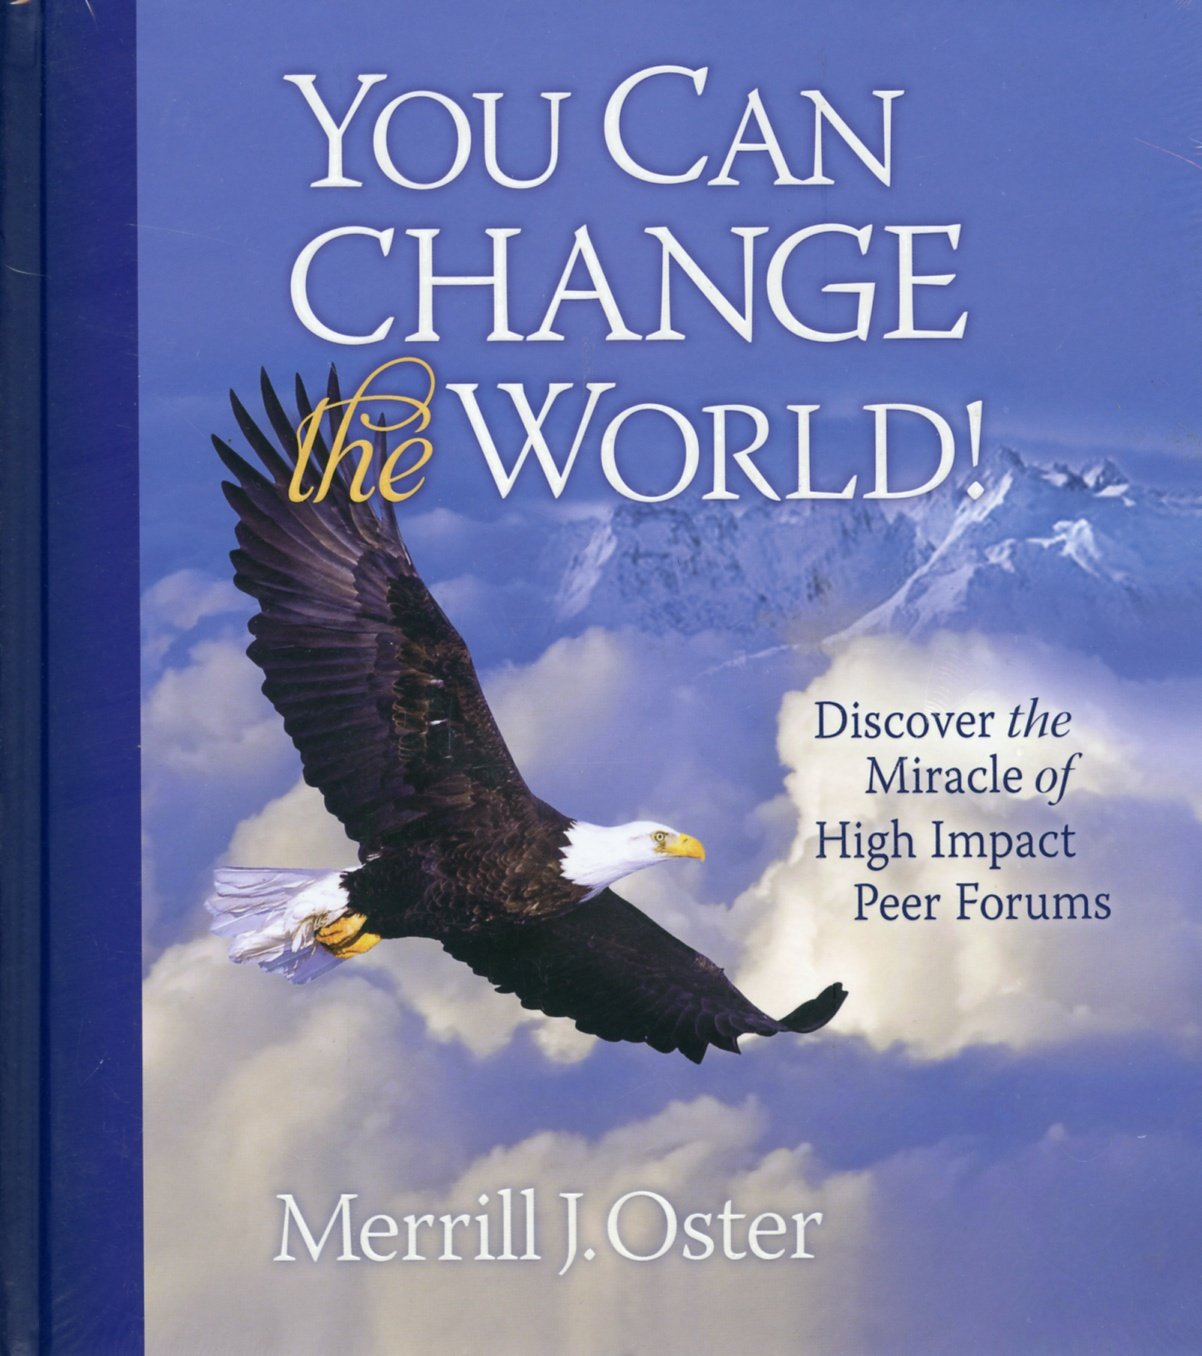 You Can Change the World! Discover the Miracle of High Impact Peer Forums PDF